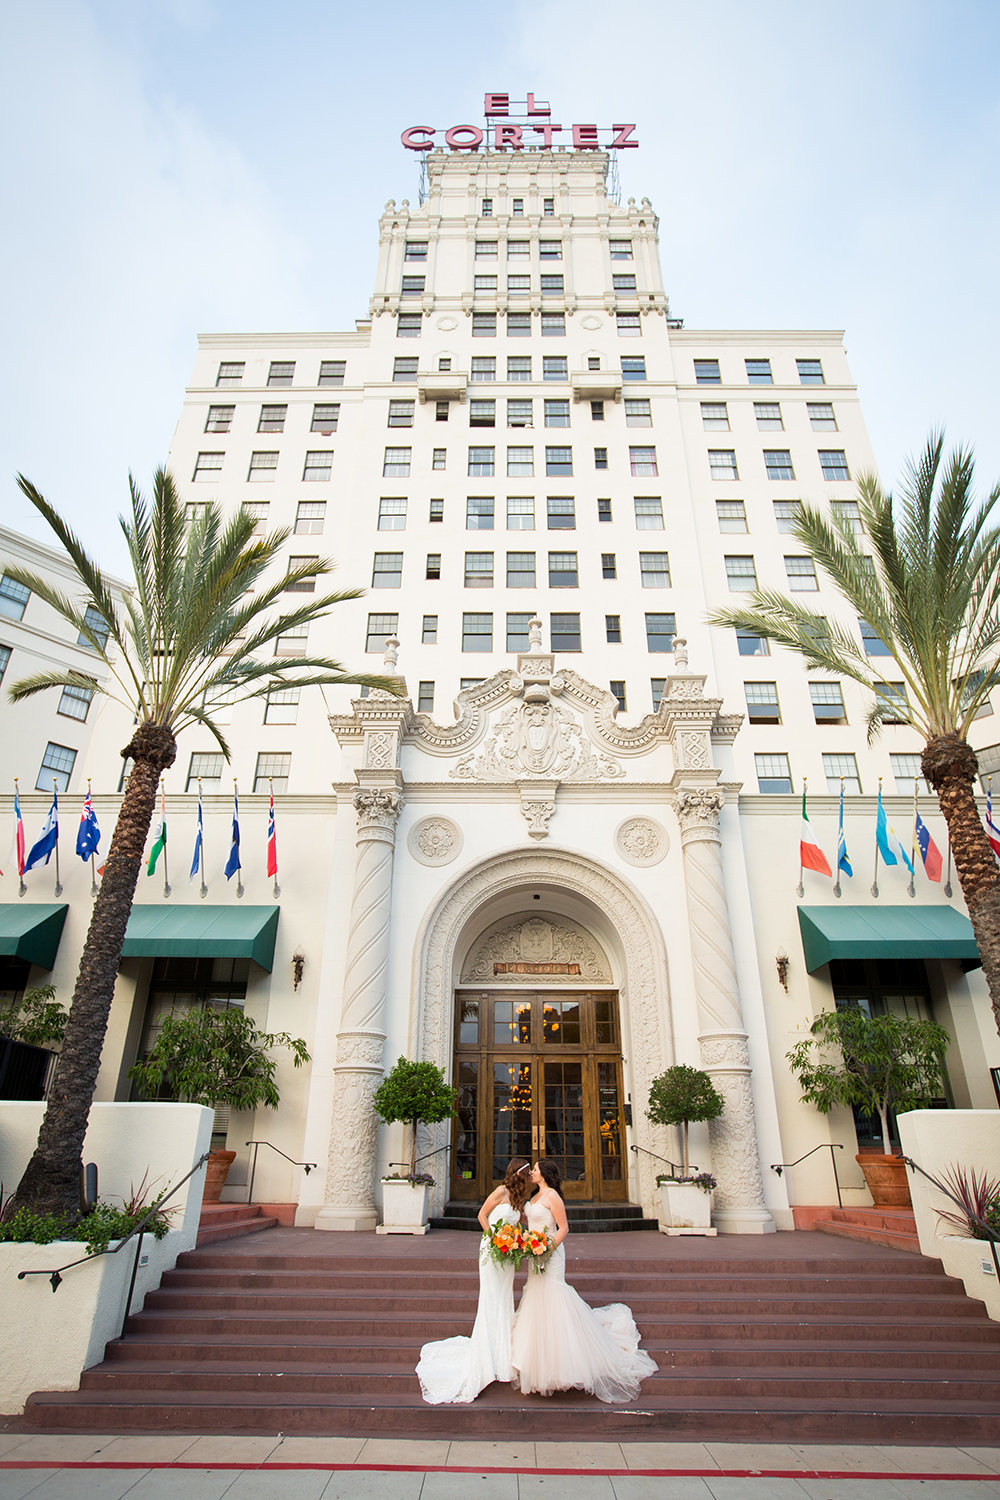 Romantic portrait of brides in front of the El Cortez in San Diego